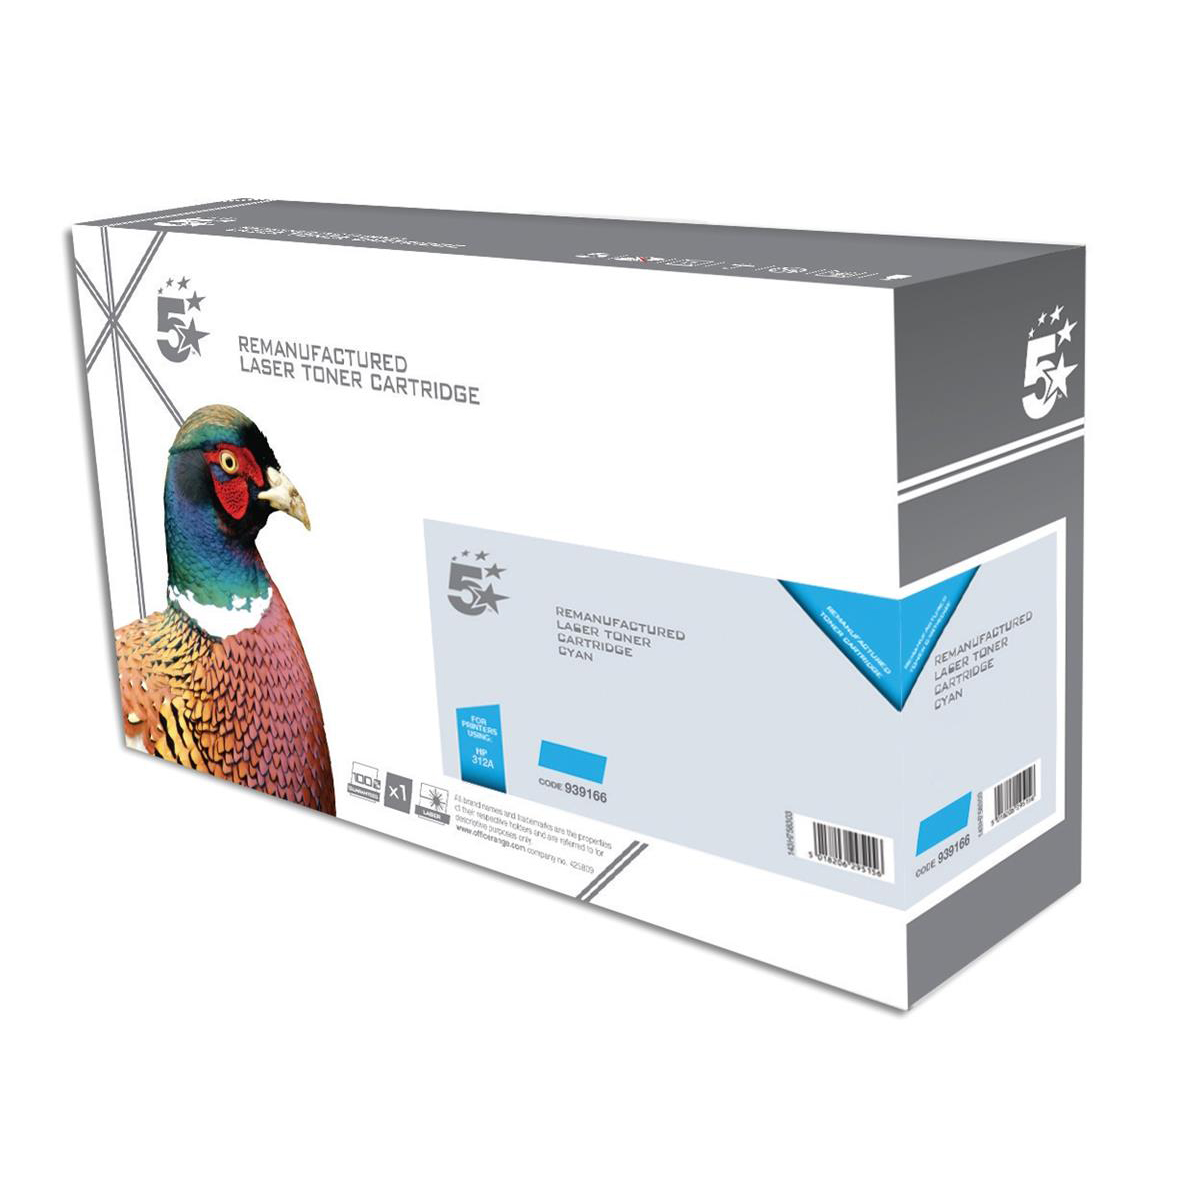 5 Star Office Remanufactured Laser Toner Cartridge Page Life 2700pp Cyan [HP 312A CF381A Alternative]